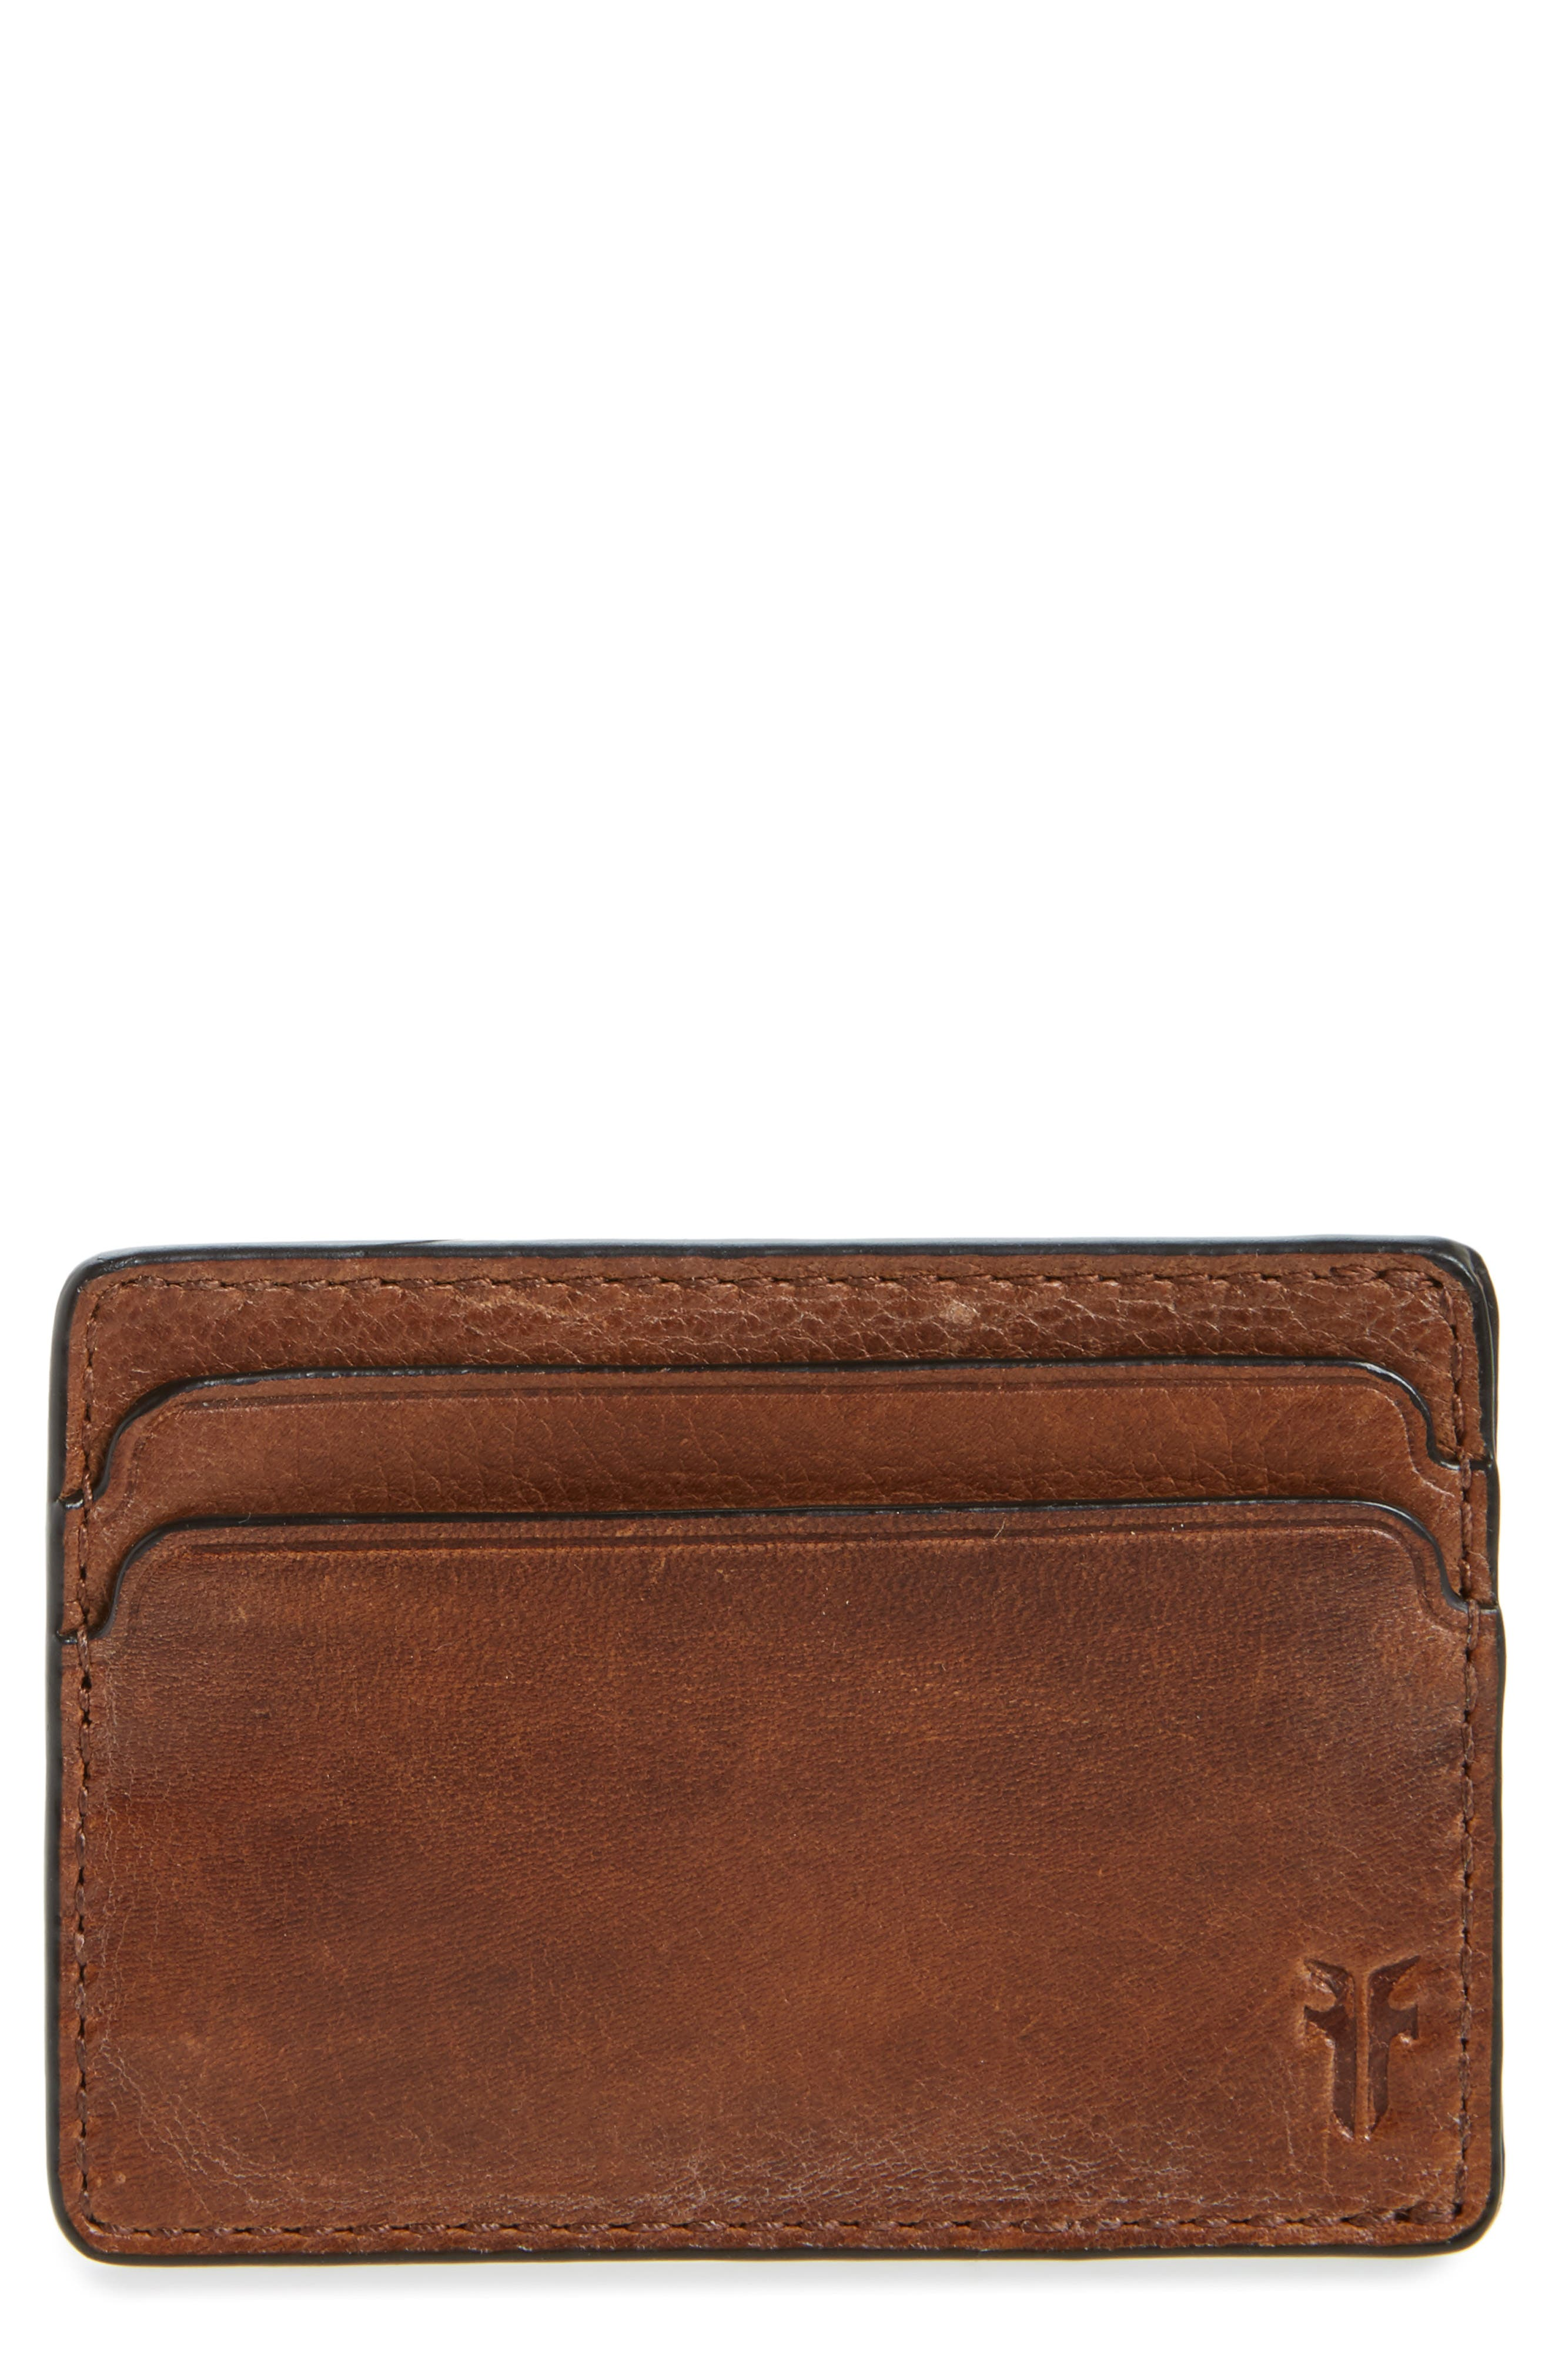 Oliver Leather Card Case,                             Main thumbnail 1, color,                             235